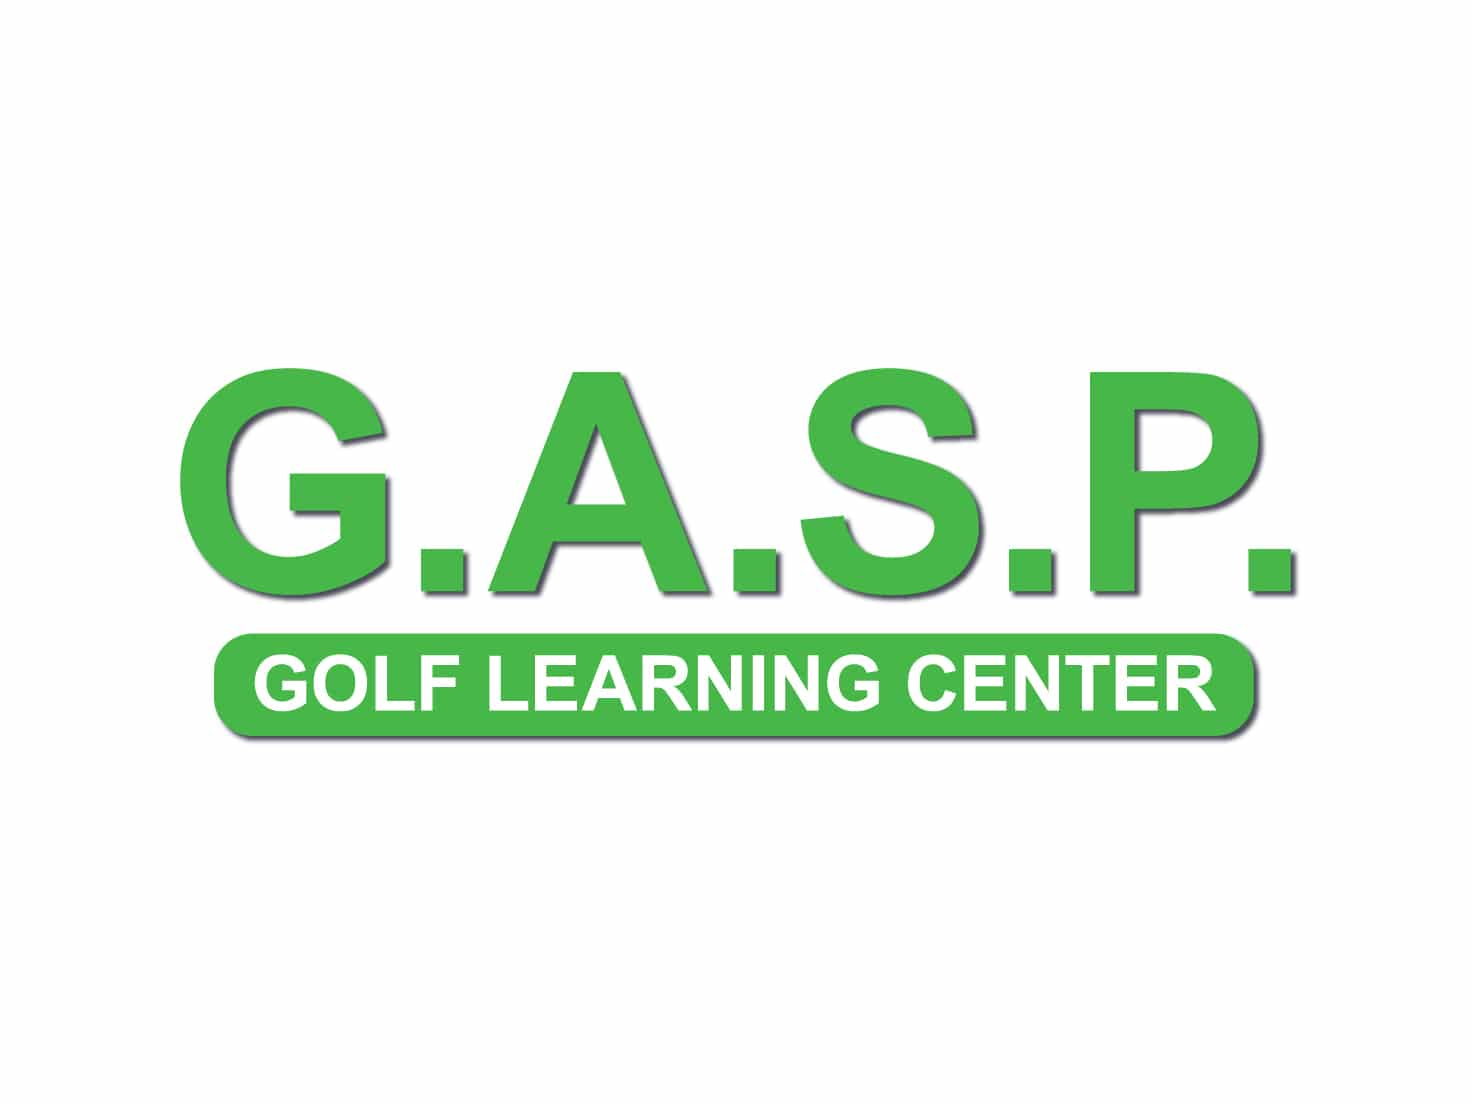 Golf Learning Center